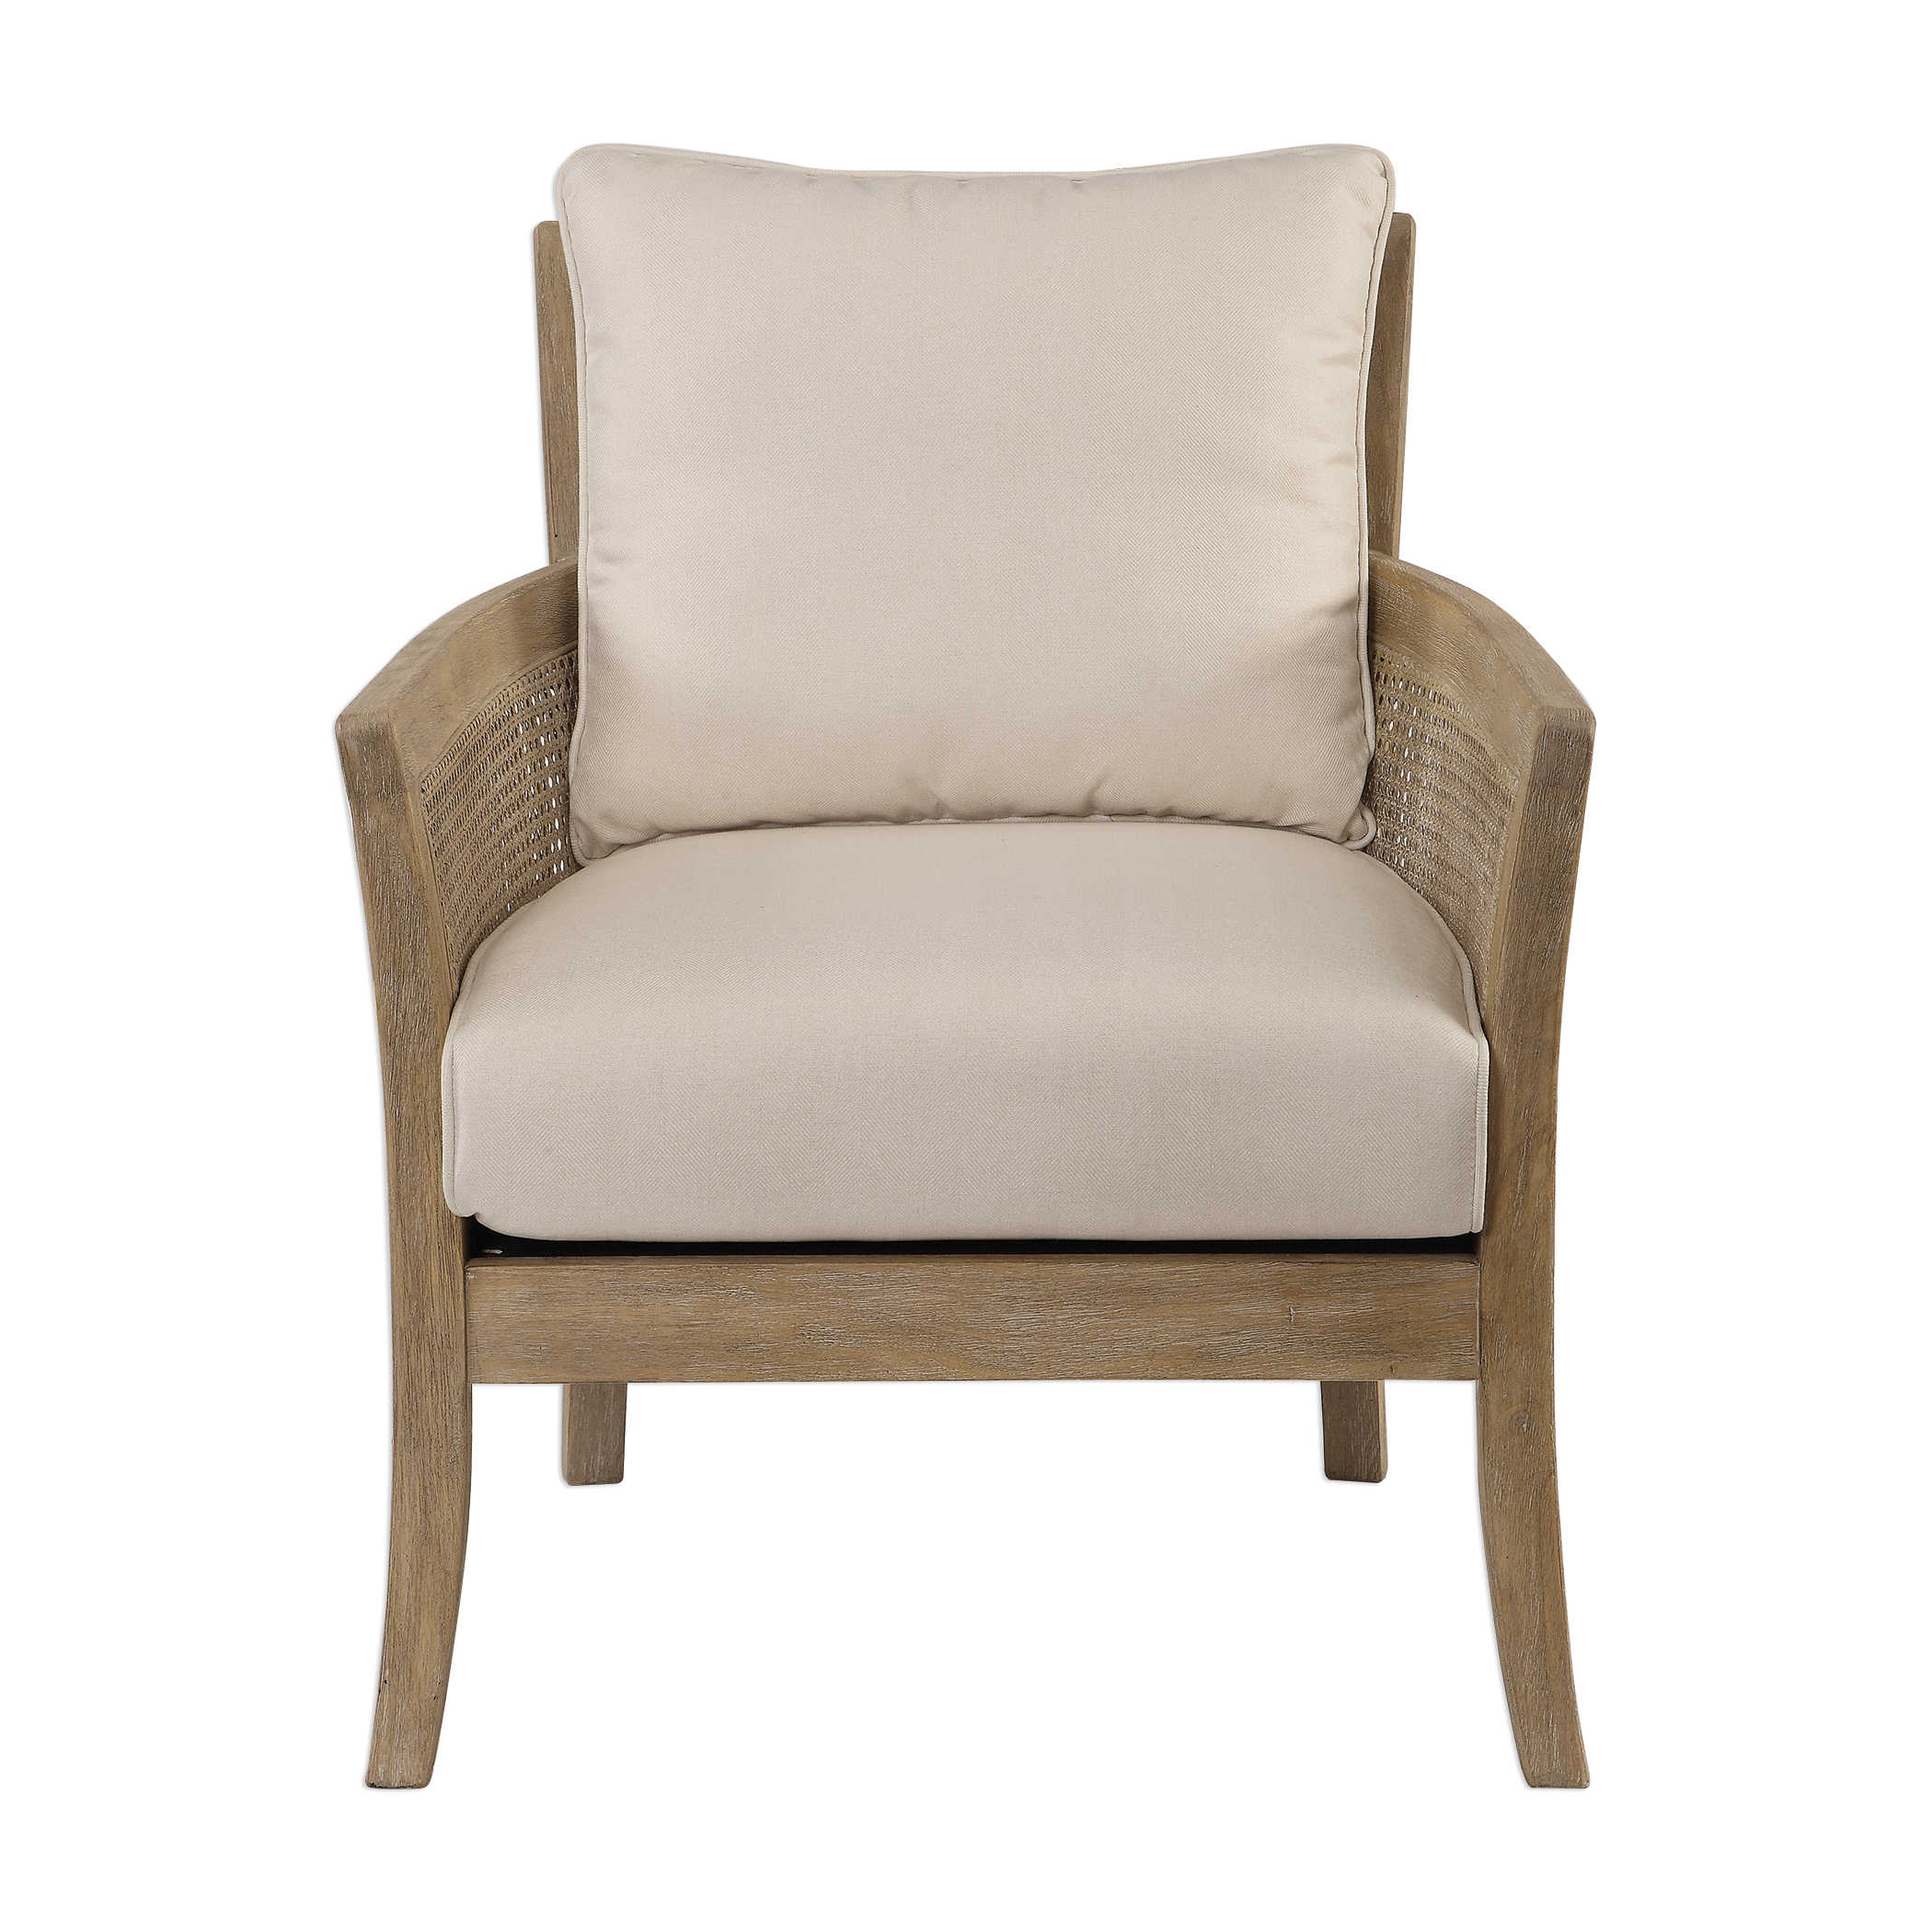 NATURAL ACCENT ARMCHAIR